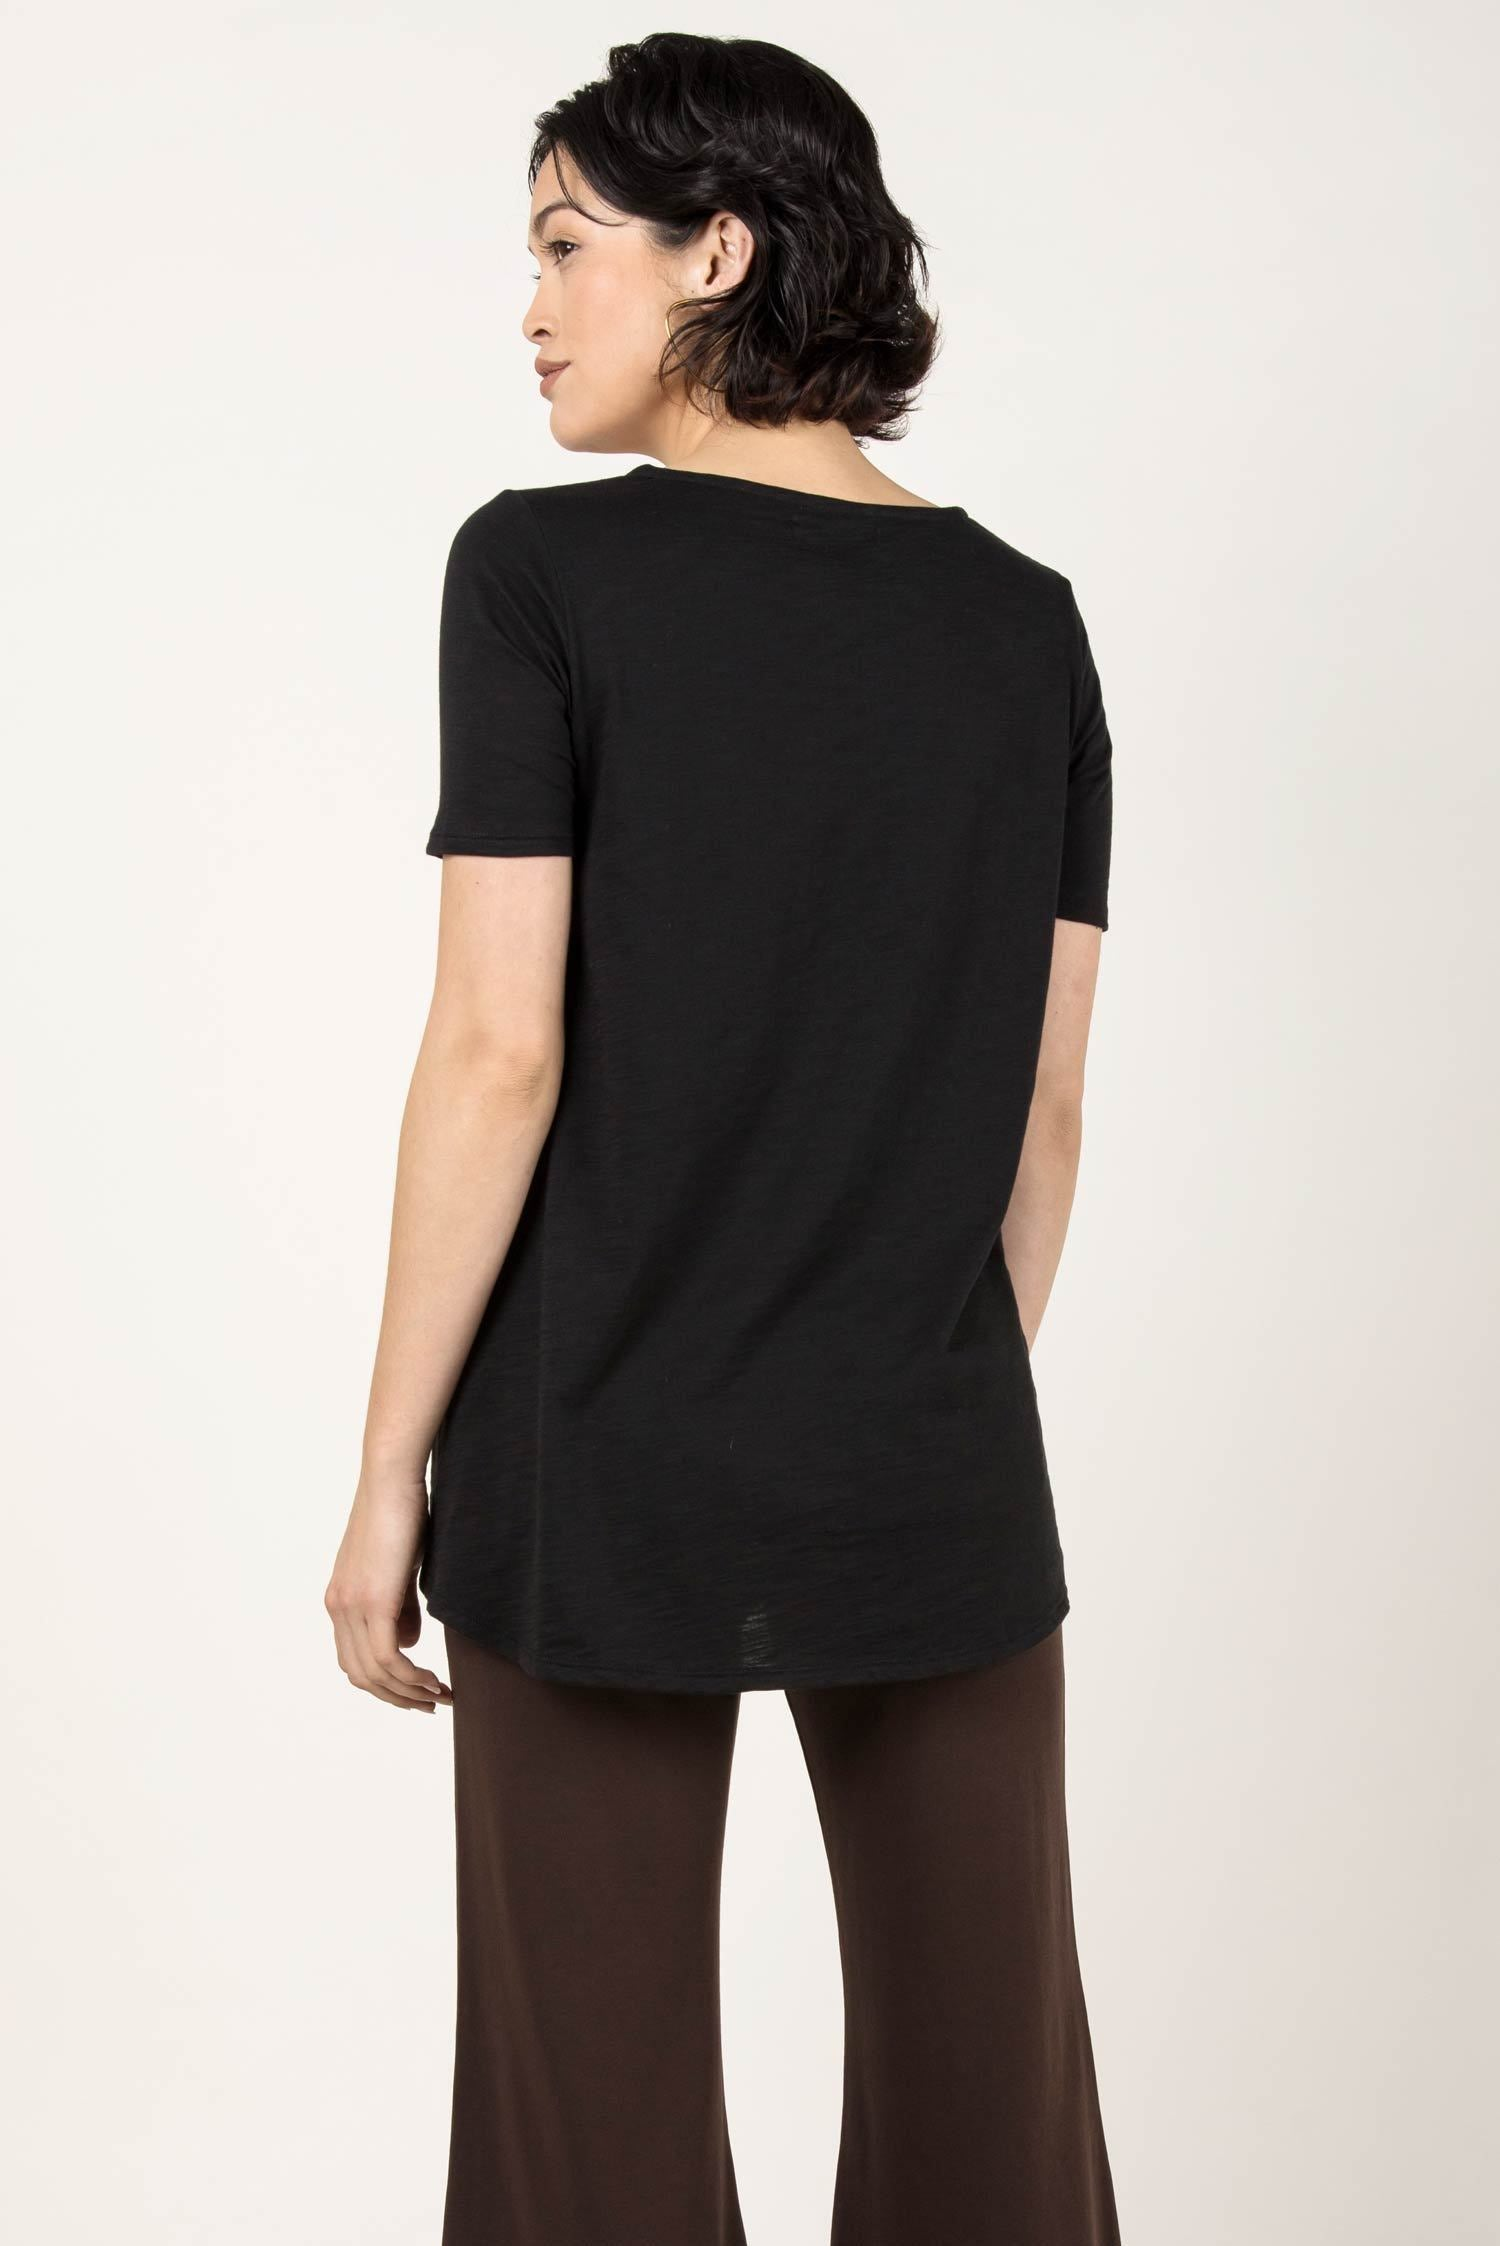 Womens Organic Cotton Tee Shirt | Essential Slub U Neck Top | Black